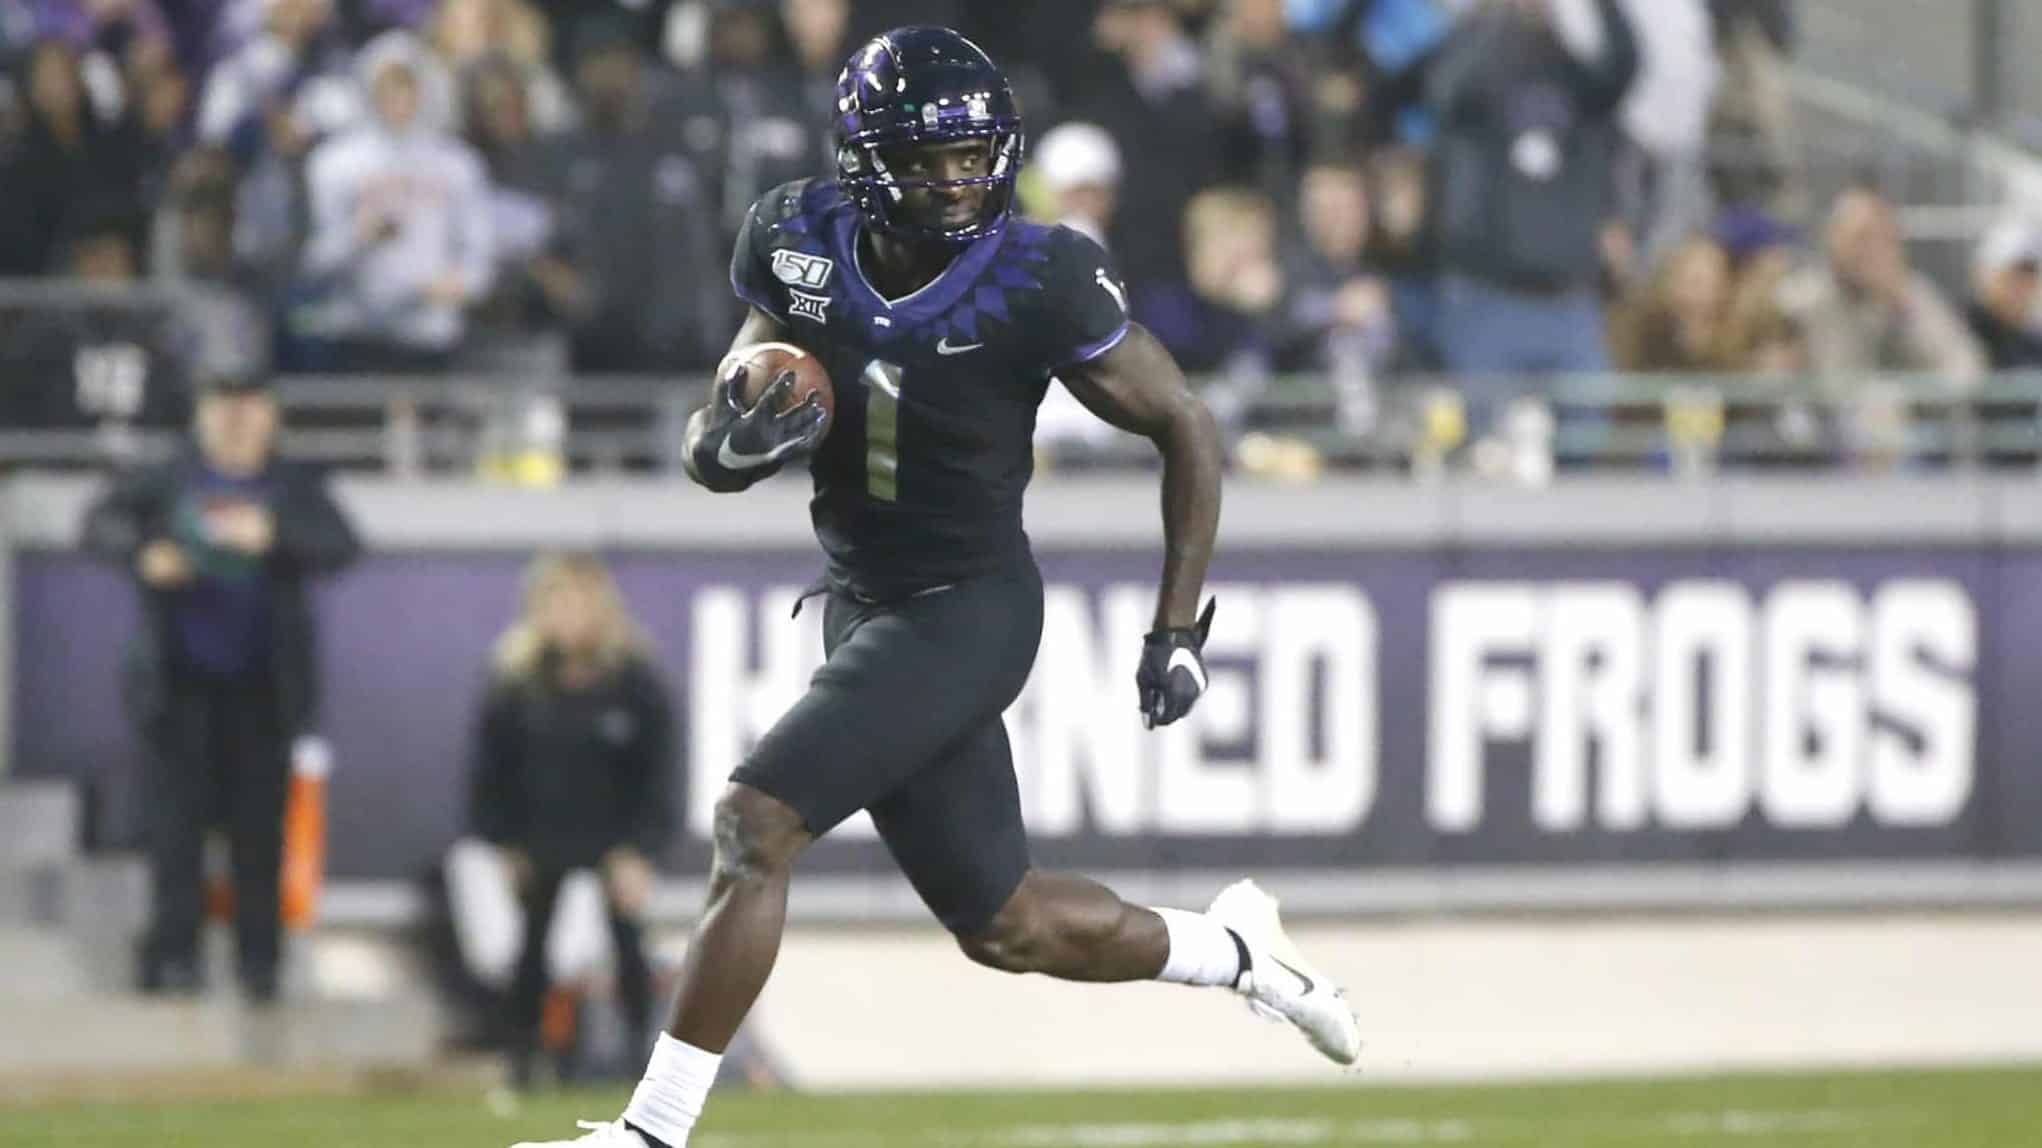 FORT WORTH, TX - NOVEMBER 29: Jalen Reagor #1 of the TCU Horned Frogs returns a punt for a touchdown against the West Virginia Mountaineers in the second half at Amon G. Carter Stadium on November 29, 2019 in Fort Worth, Texas. West Virginia won 20-17.